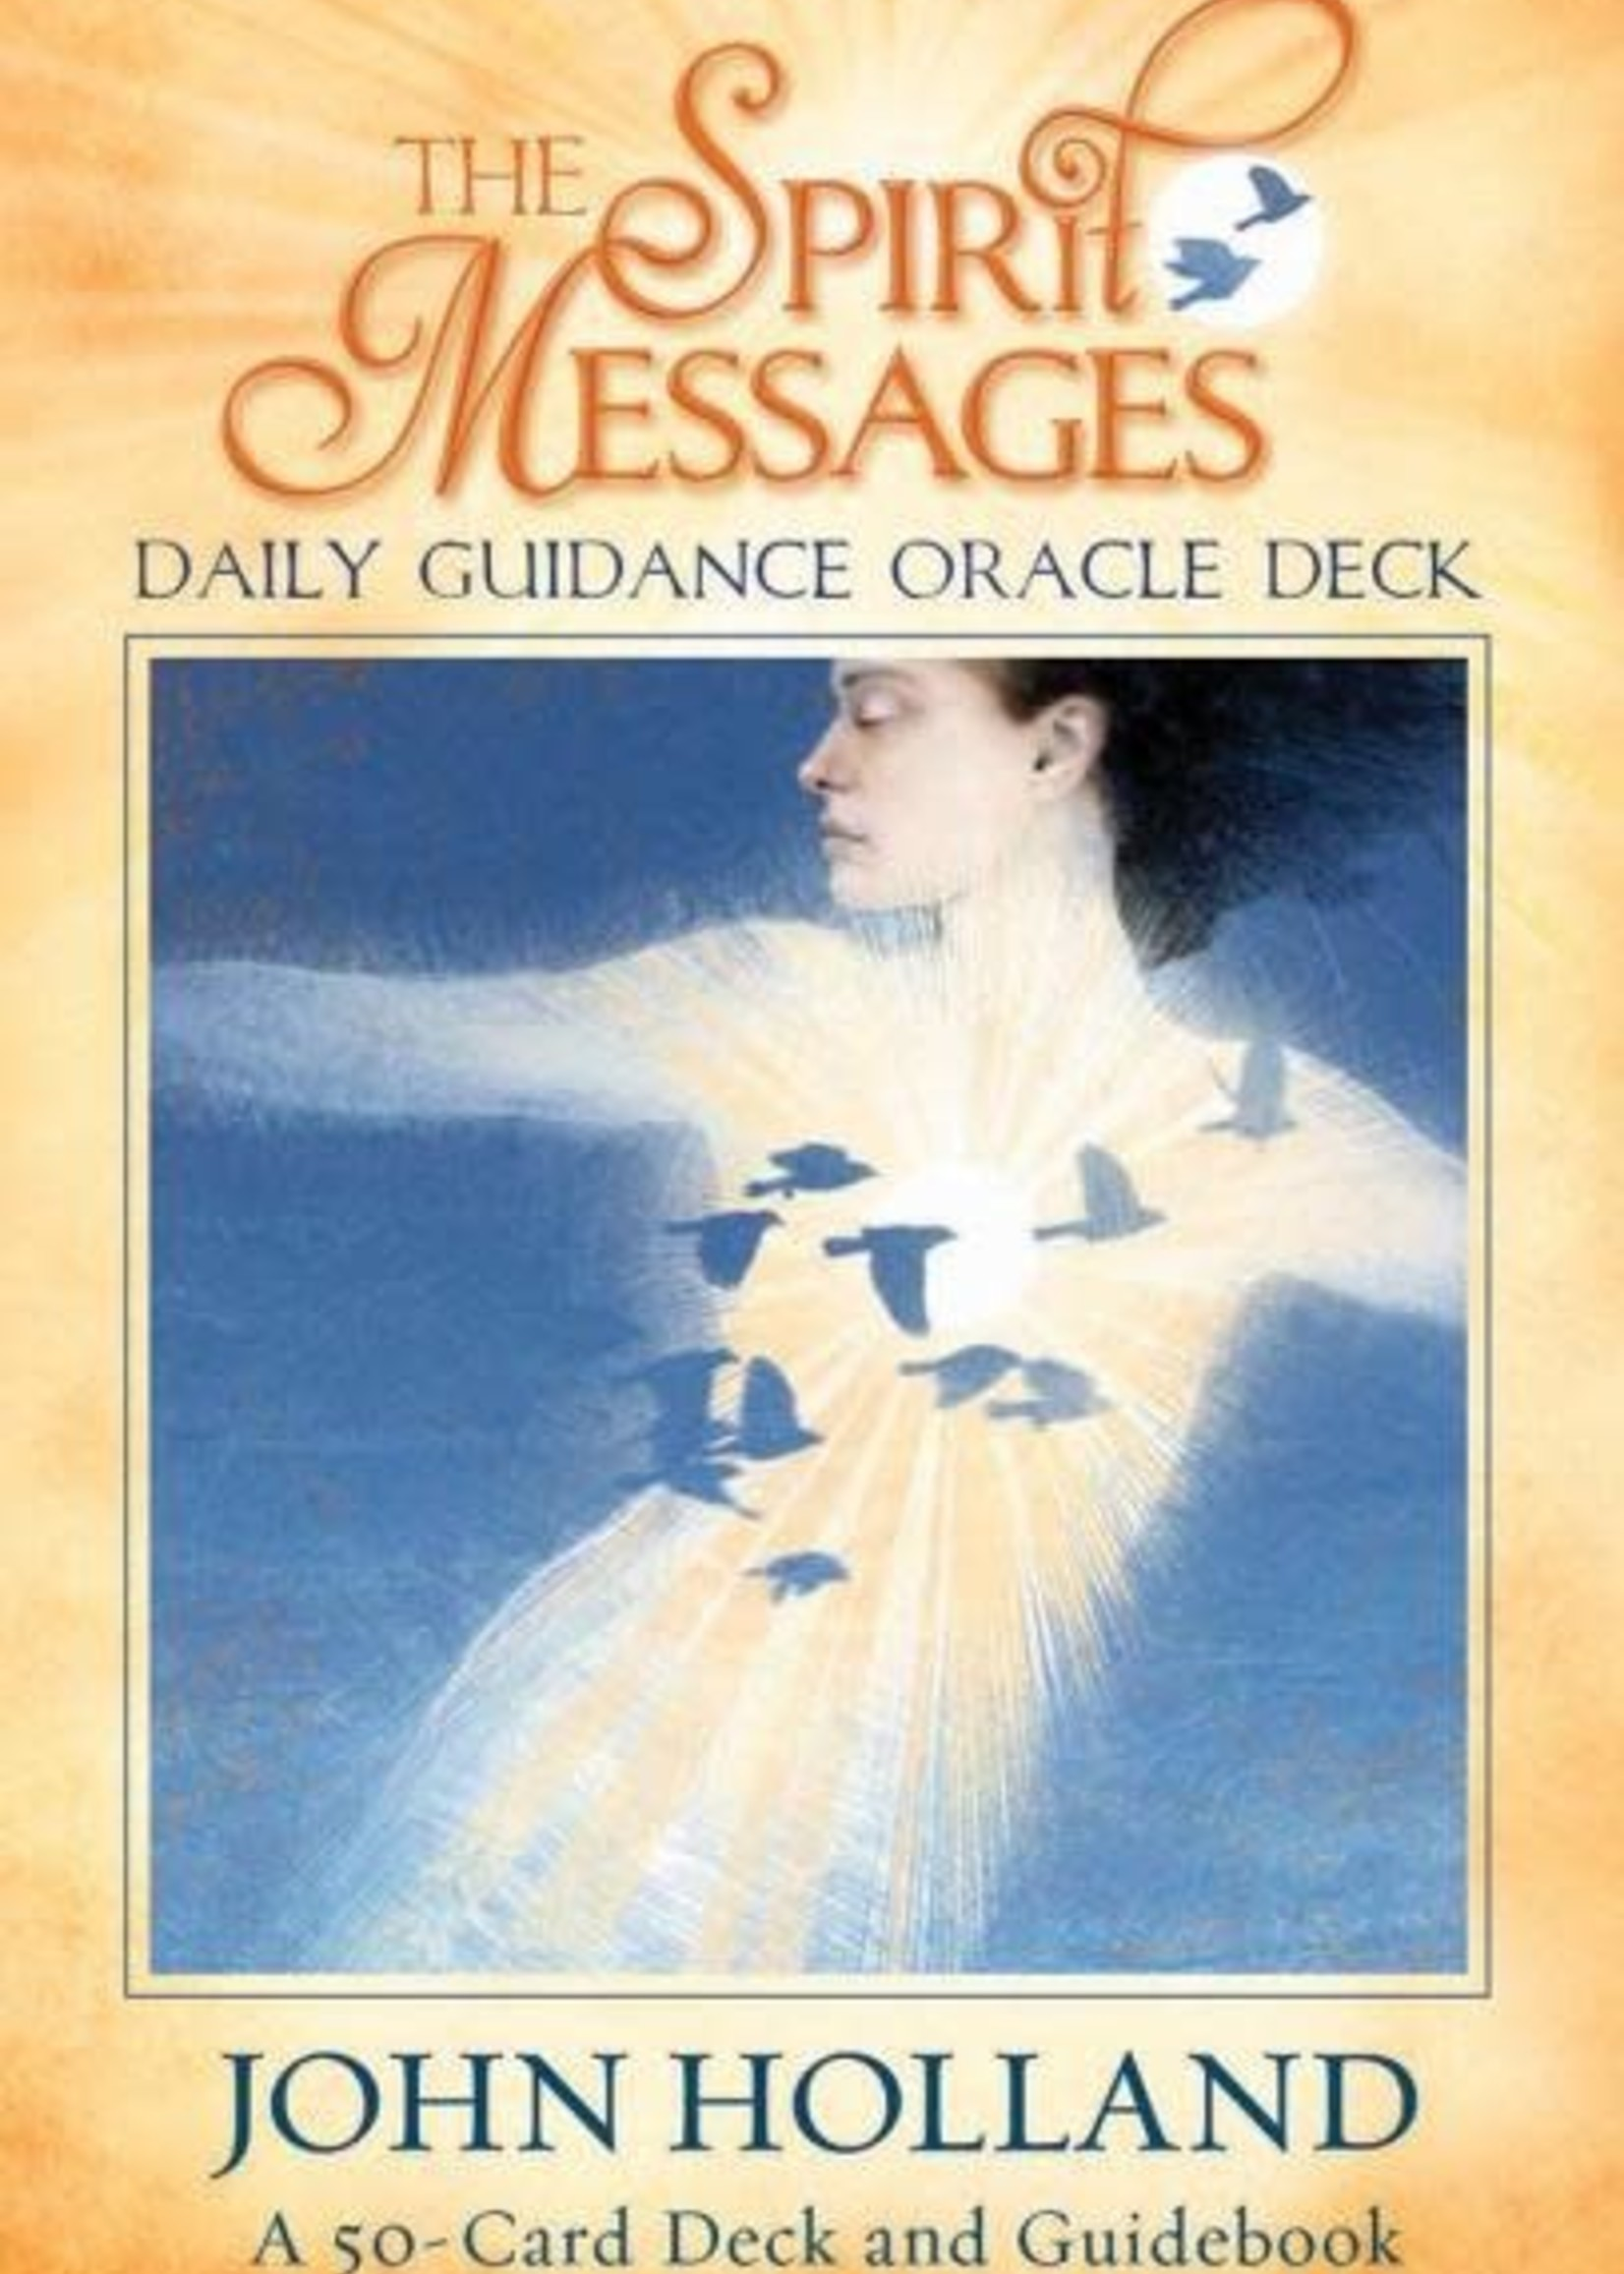 Deck Spirit Messages Daily Guidance Oracle: A 50-Card Deck and Guidebook